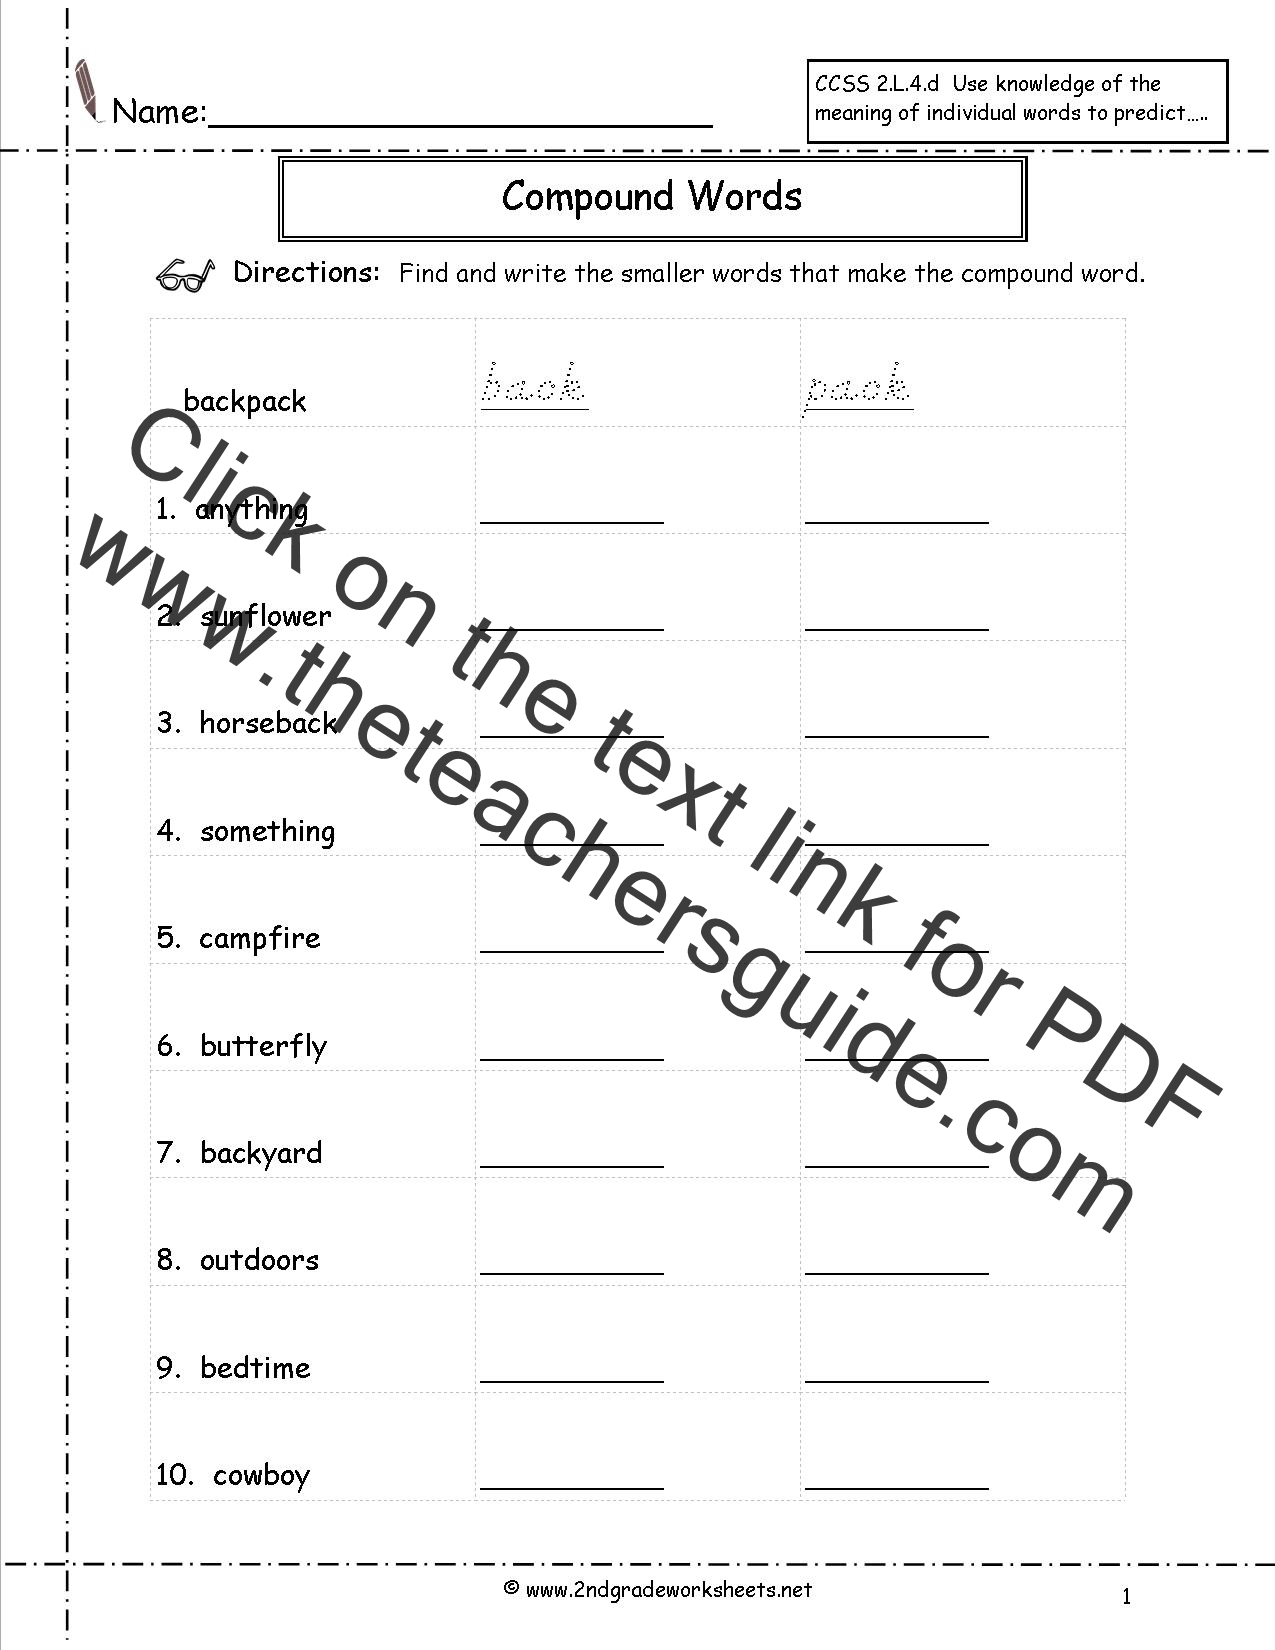 Worksheet Antonyms Activities For 2nd Grade free languagegrammar worksheets and printouts compound words worksheets